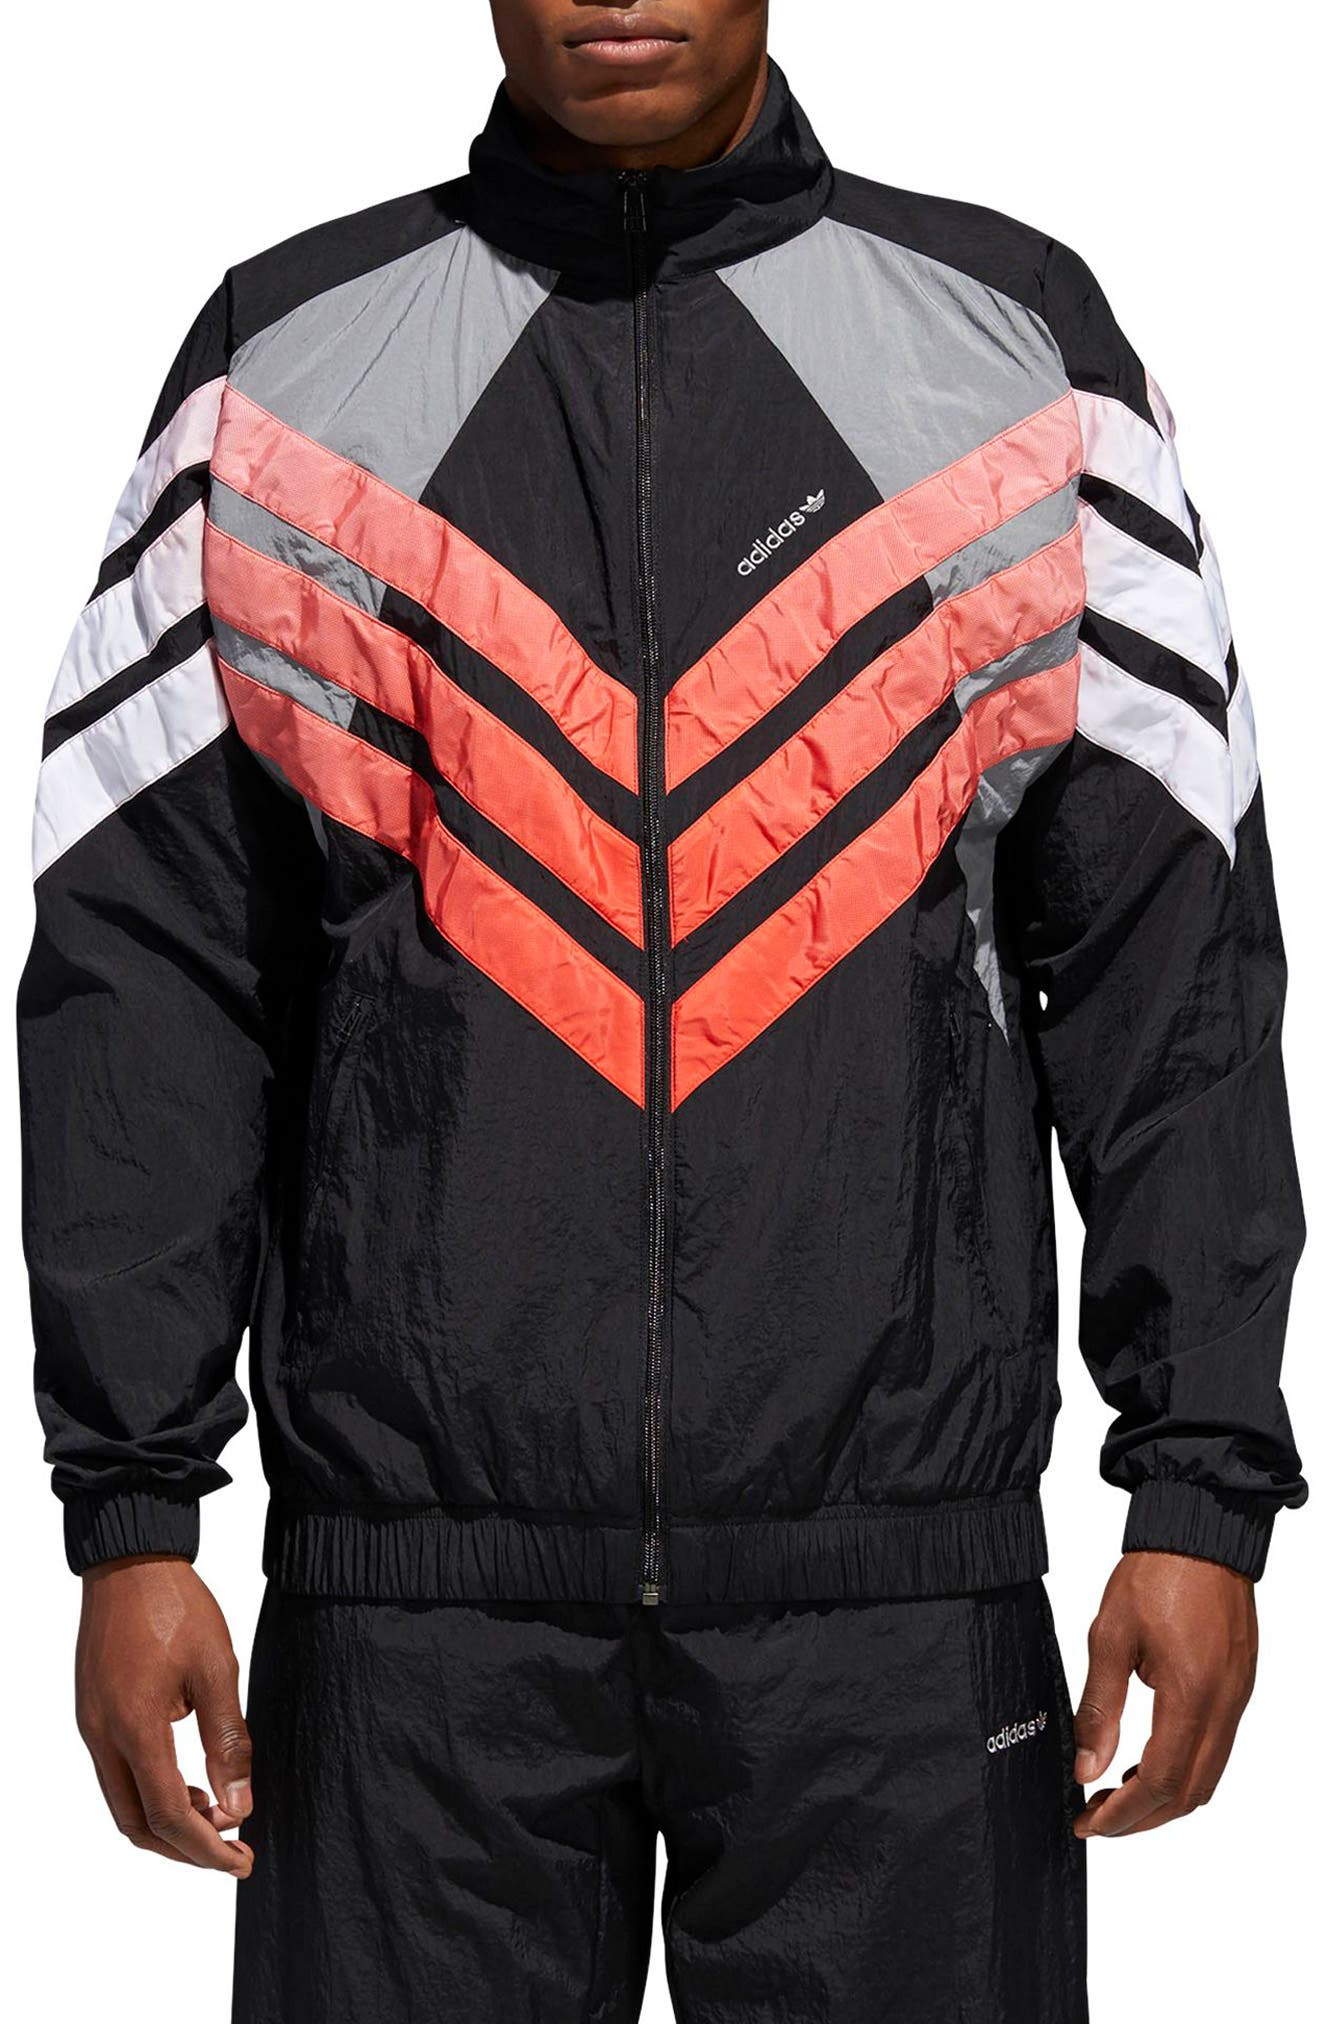 Tironti Zip Windbreaker by Adidas